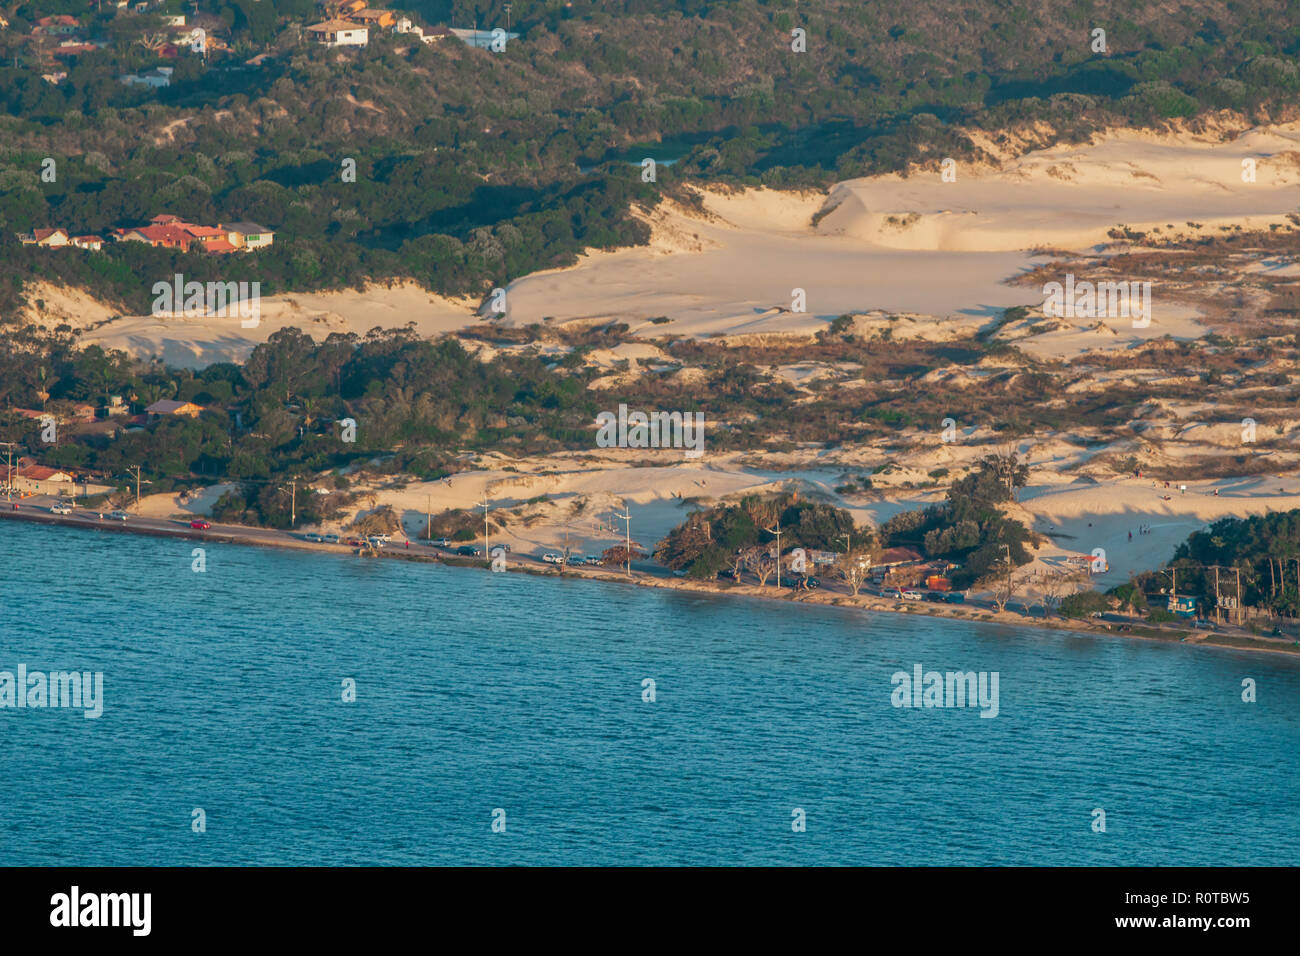 blue water and dunes separated by a thin road at Florianopolis, Santa Catarina, Brazil - Stock Image